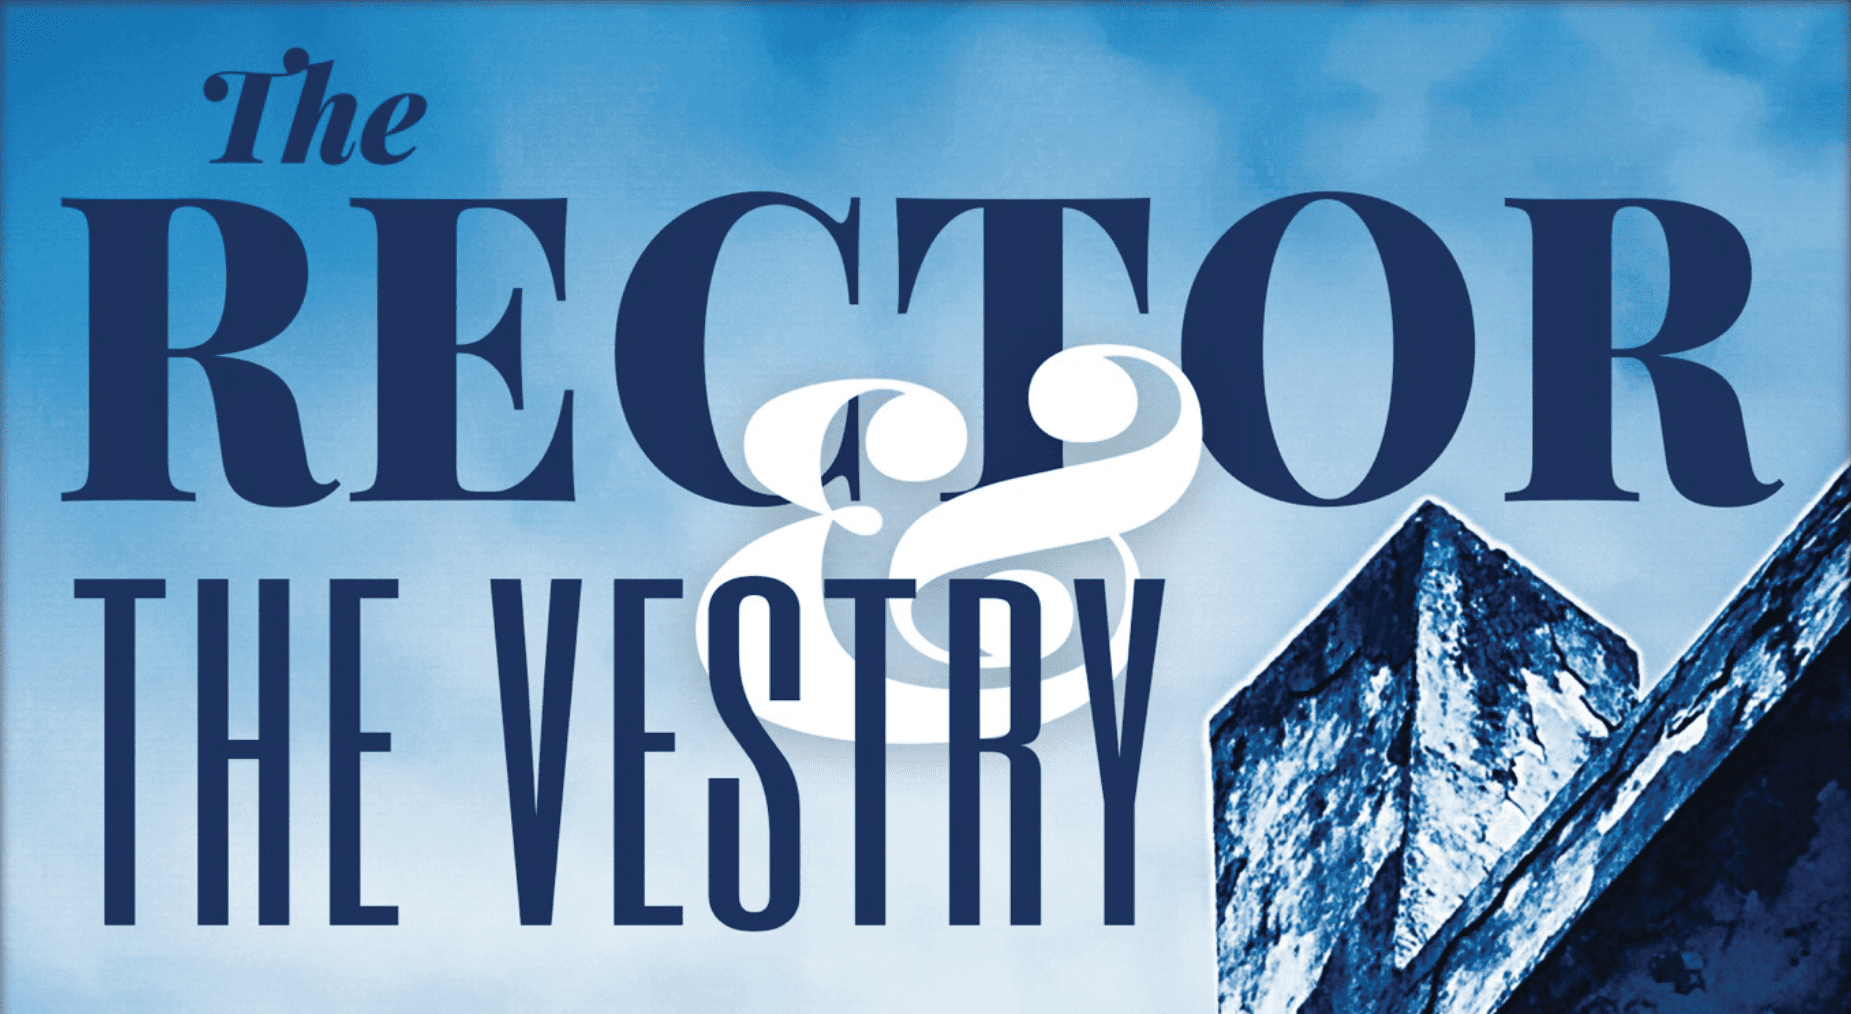 """Read """"The Rector and the Vestry,"""" A Guide for Rectors, Wardens, and Vestry Members"""